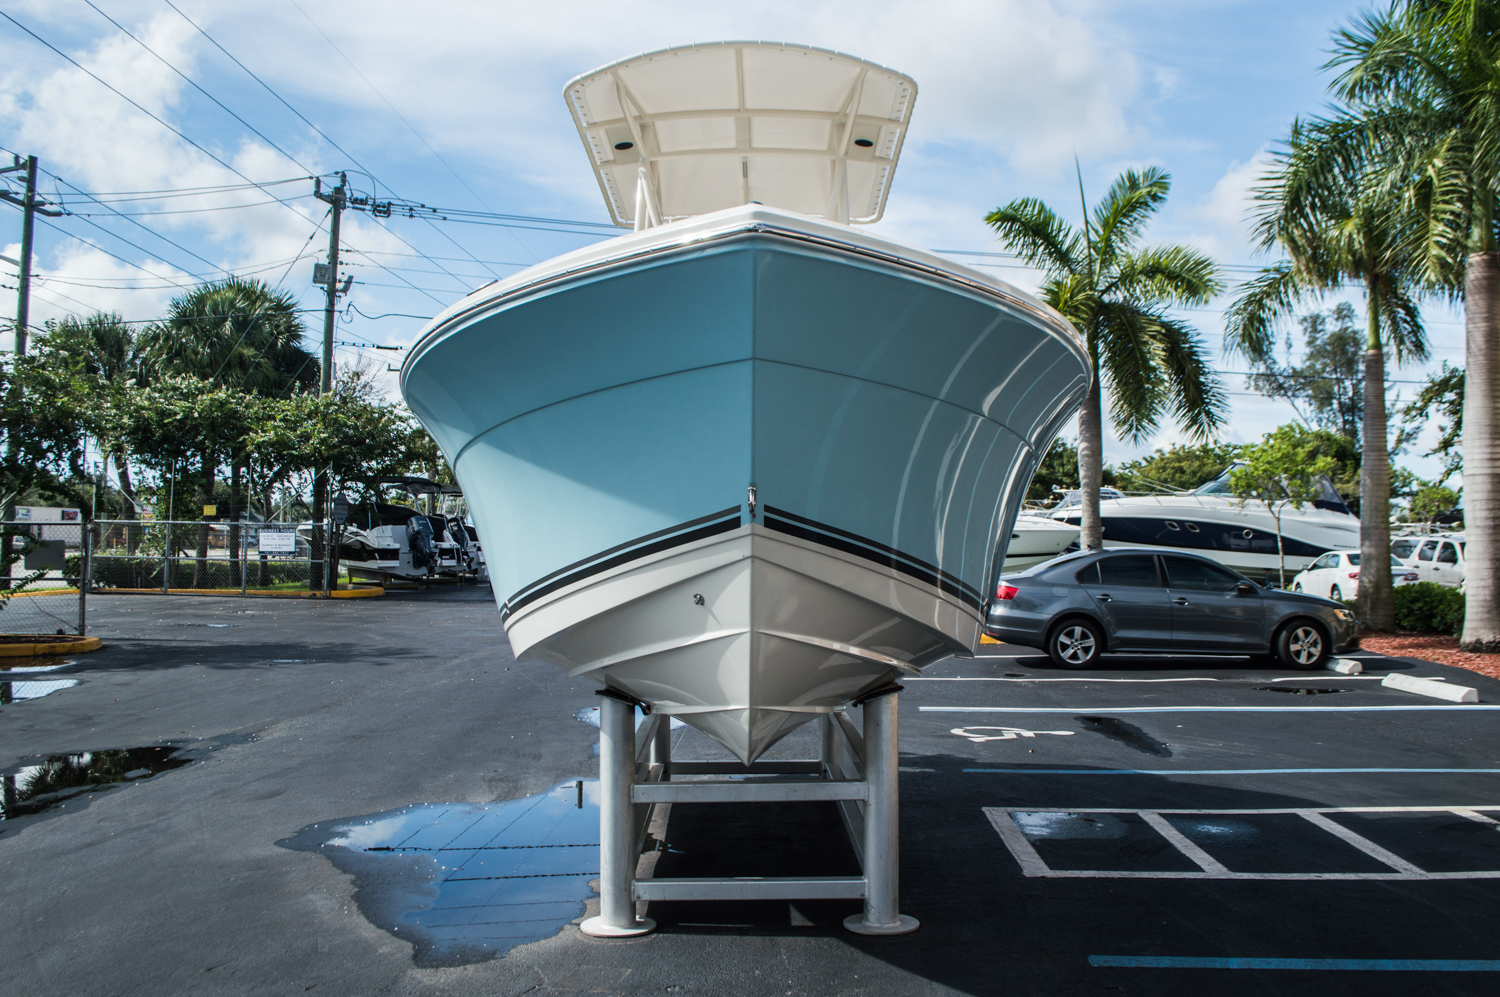 Thumbnail 2 for New 2016 Cobia 201 Center Console boat for sale in West Palm Beach, FL